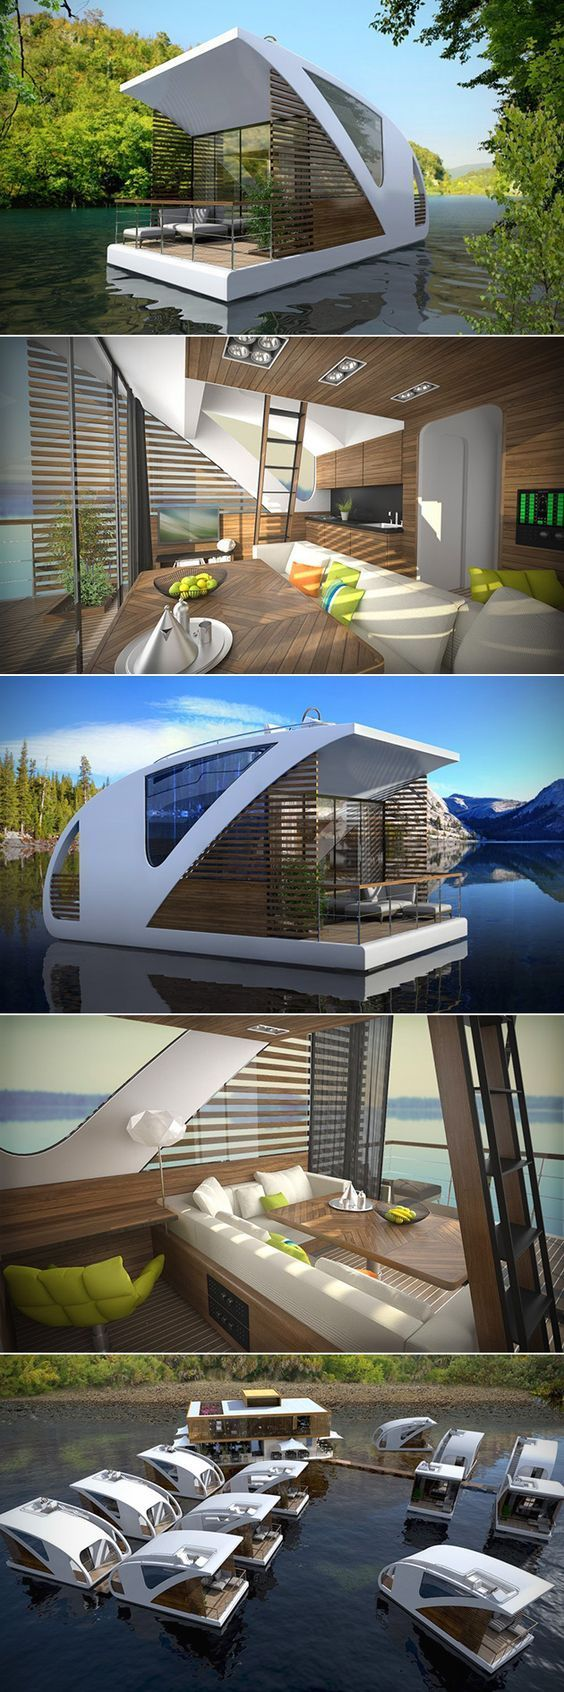 This new floating hotel with catamaran apartments aims at promoting low impact tourism on inland